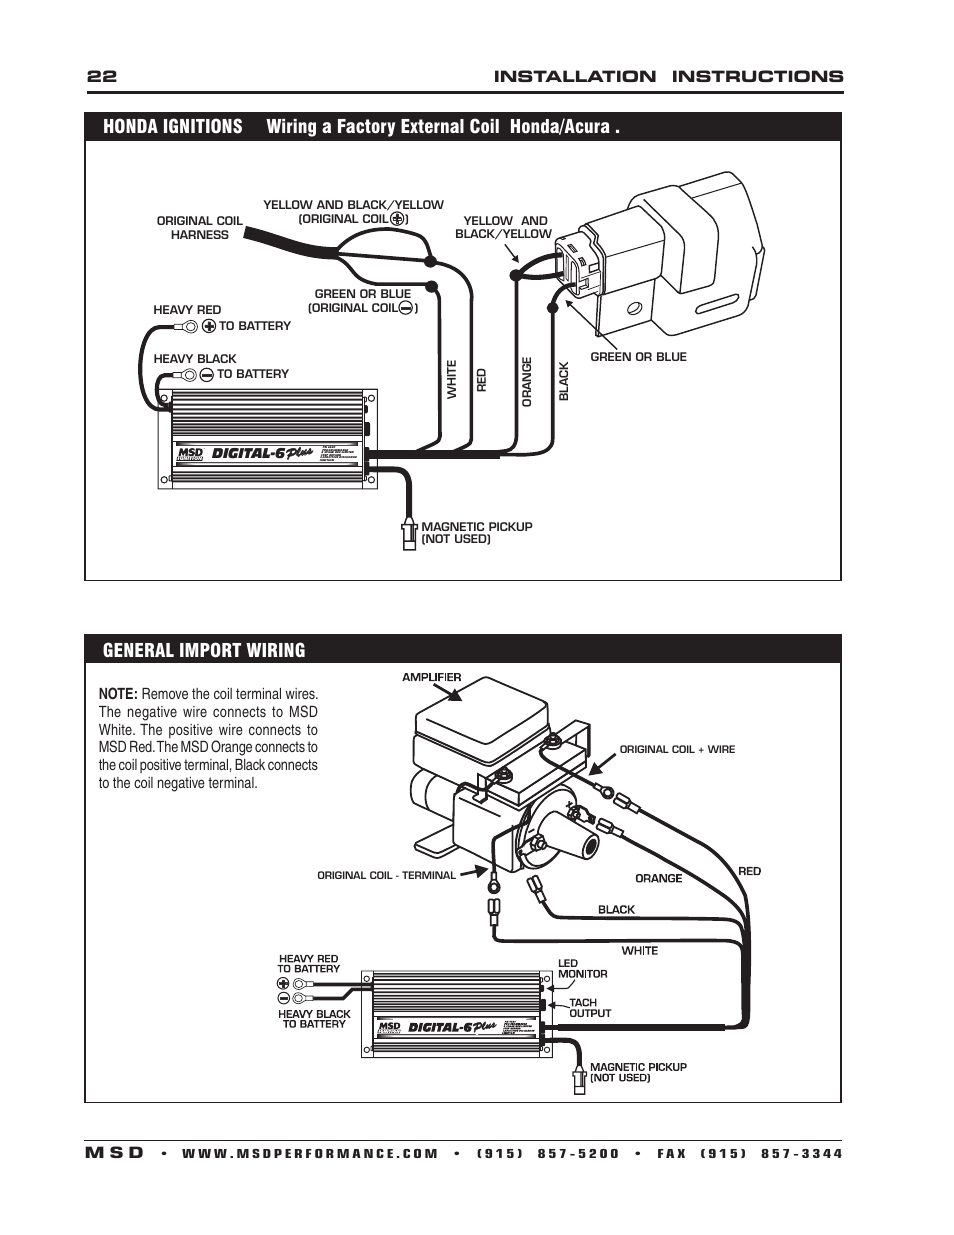 msd 6520 digital 6 plus ignition control installation page22 22 installation instructions m s d msd 6520 digital 6 plus msd digital 6 wiring diagram at readyjetset.co